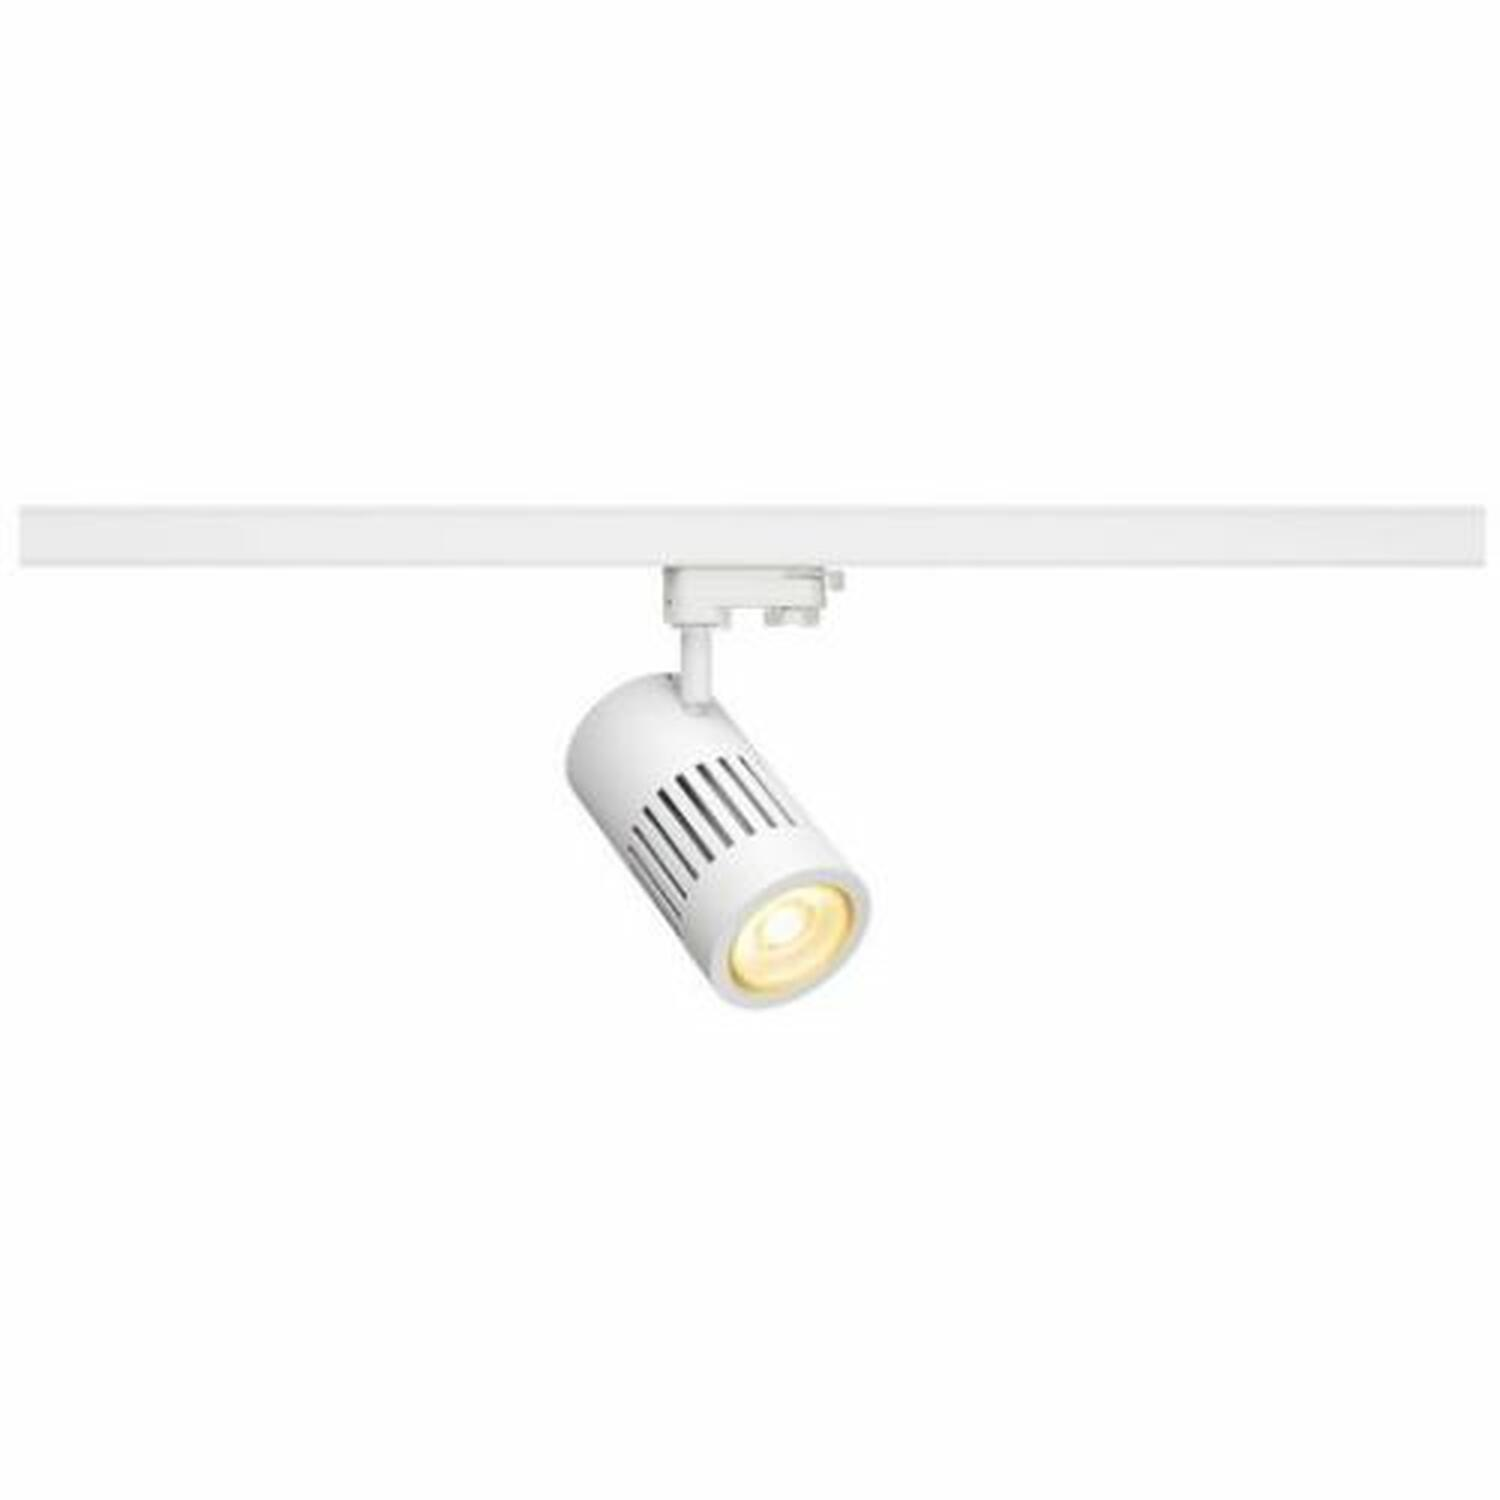 STRUCTEC LED 30W, rund, weiss, rich color, 60°, inkl. 3P.-Adapter